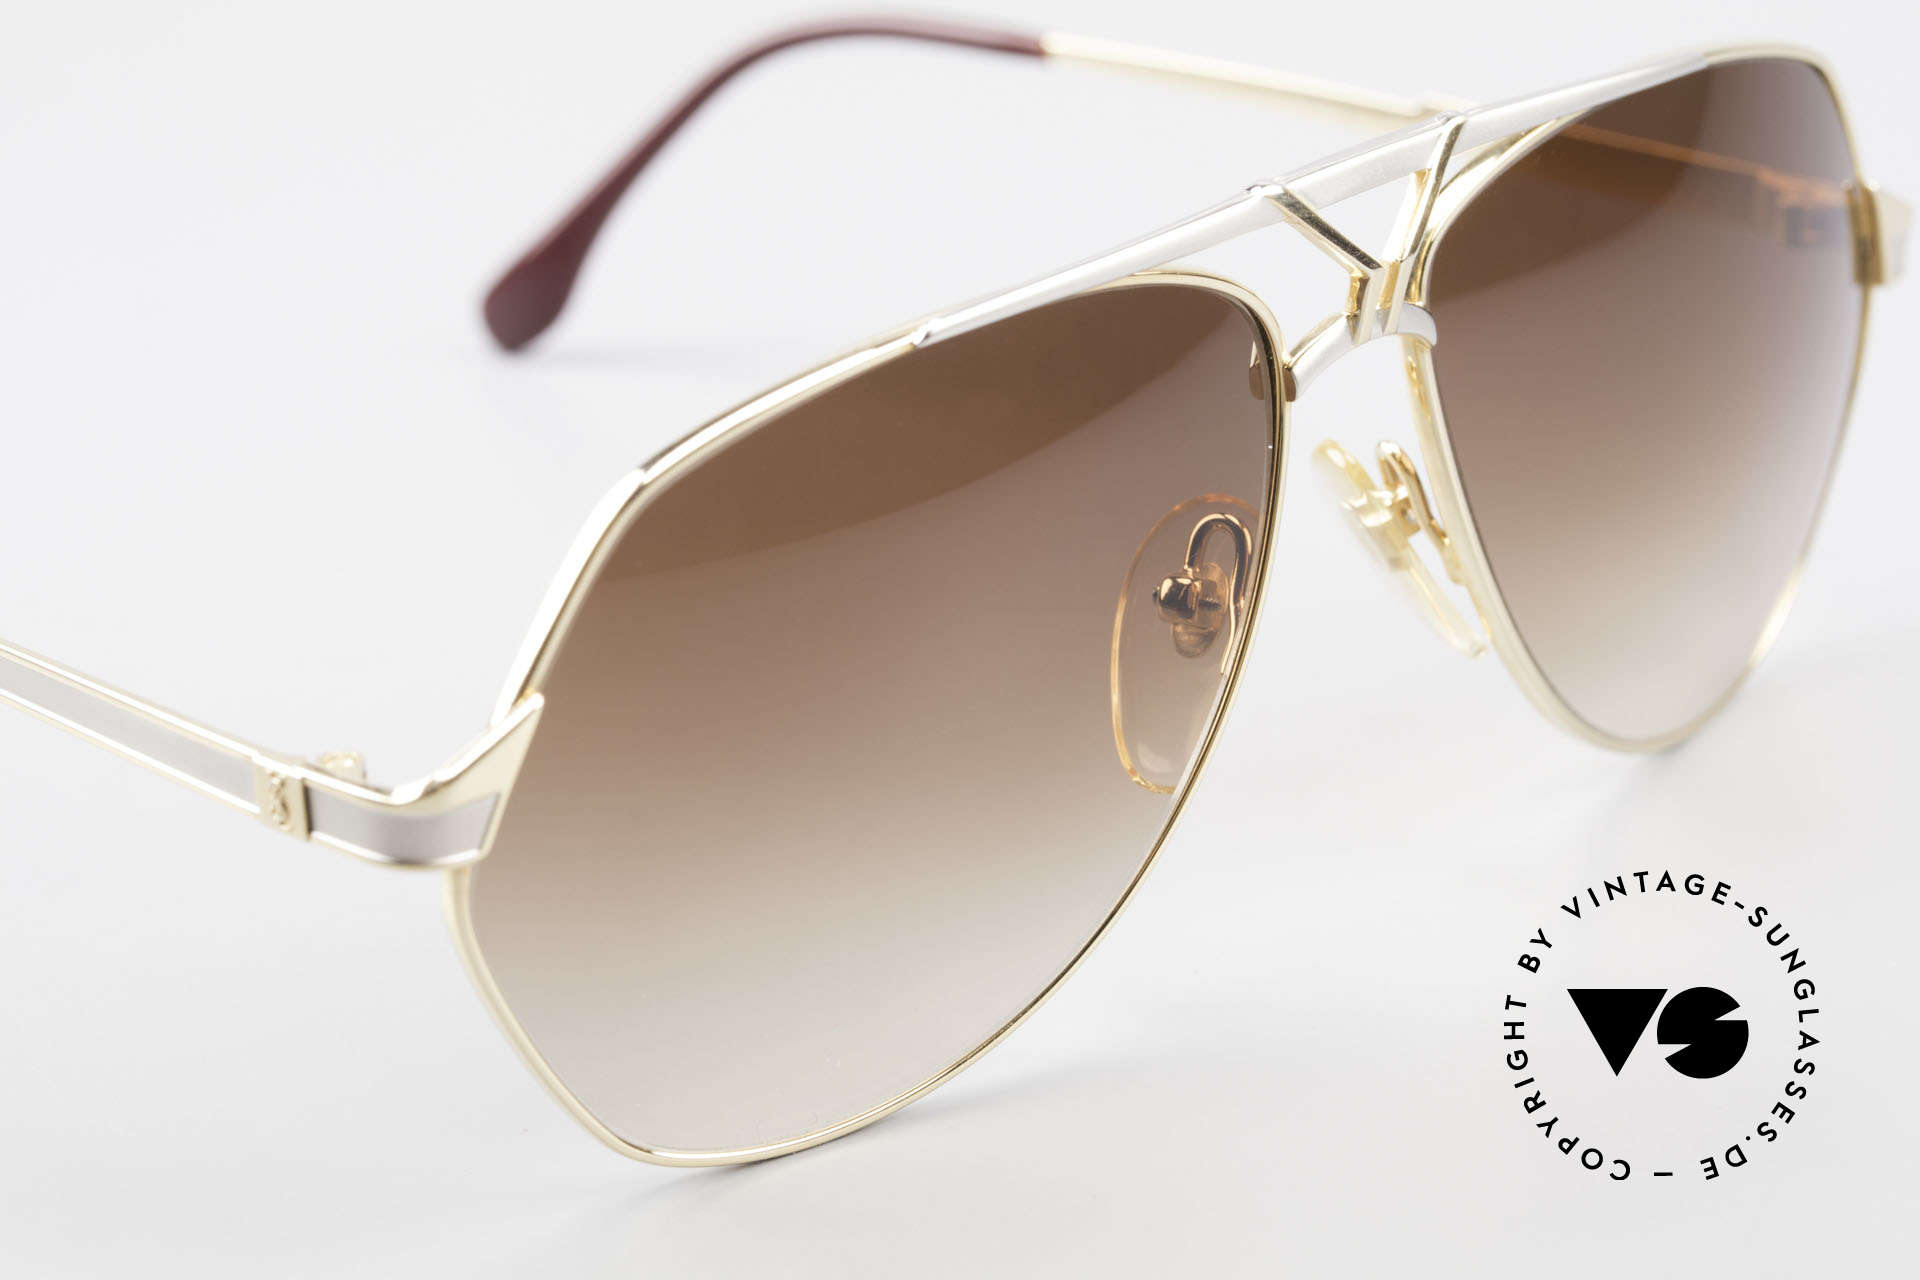 Yves Saint Laurent 8806 80's YSL Men's Luxury Shades, NO RETRO shades, but a rare old 80's ORIGINAL, Made for Men